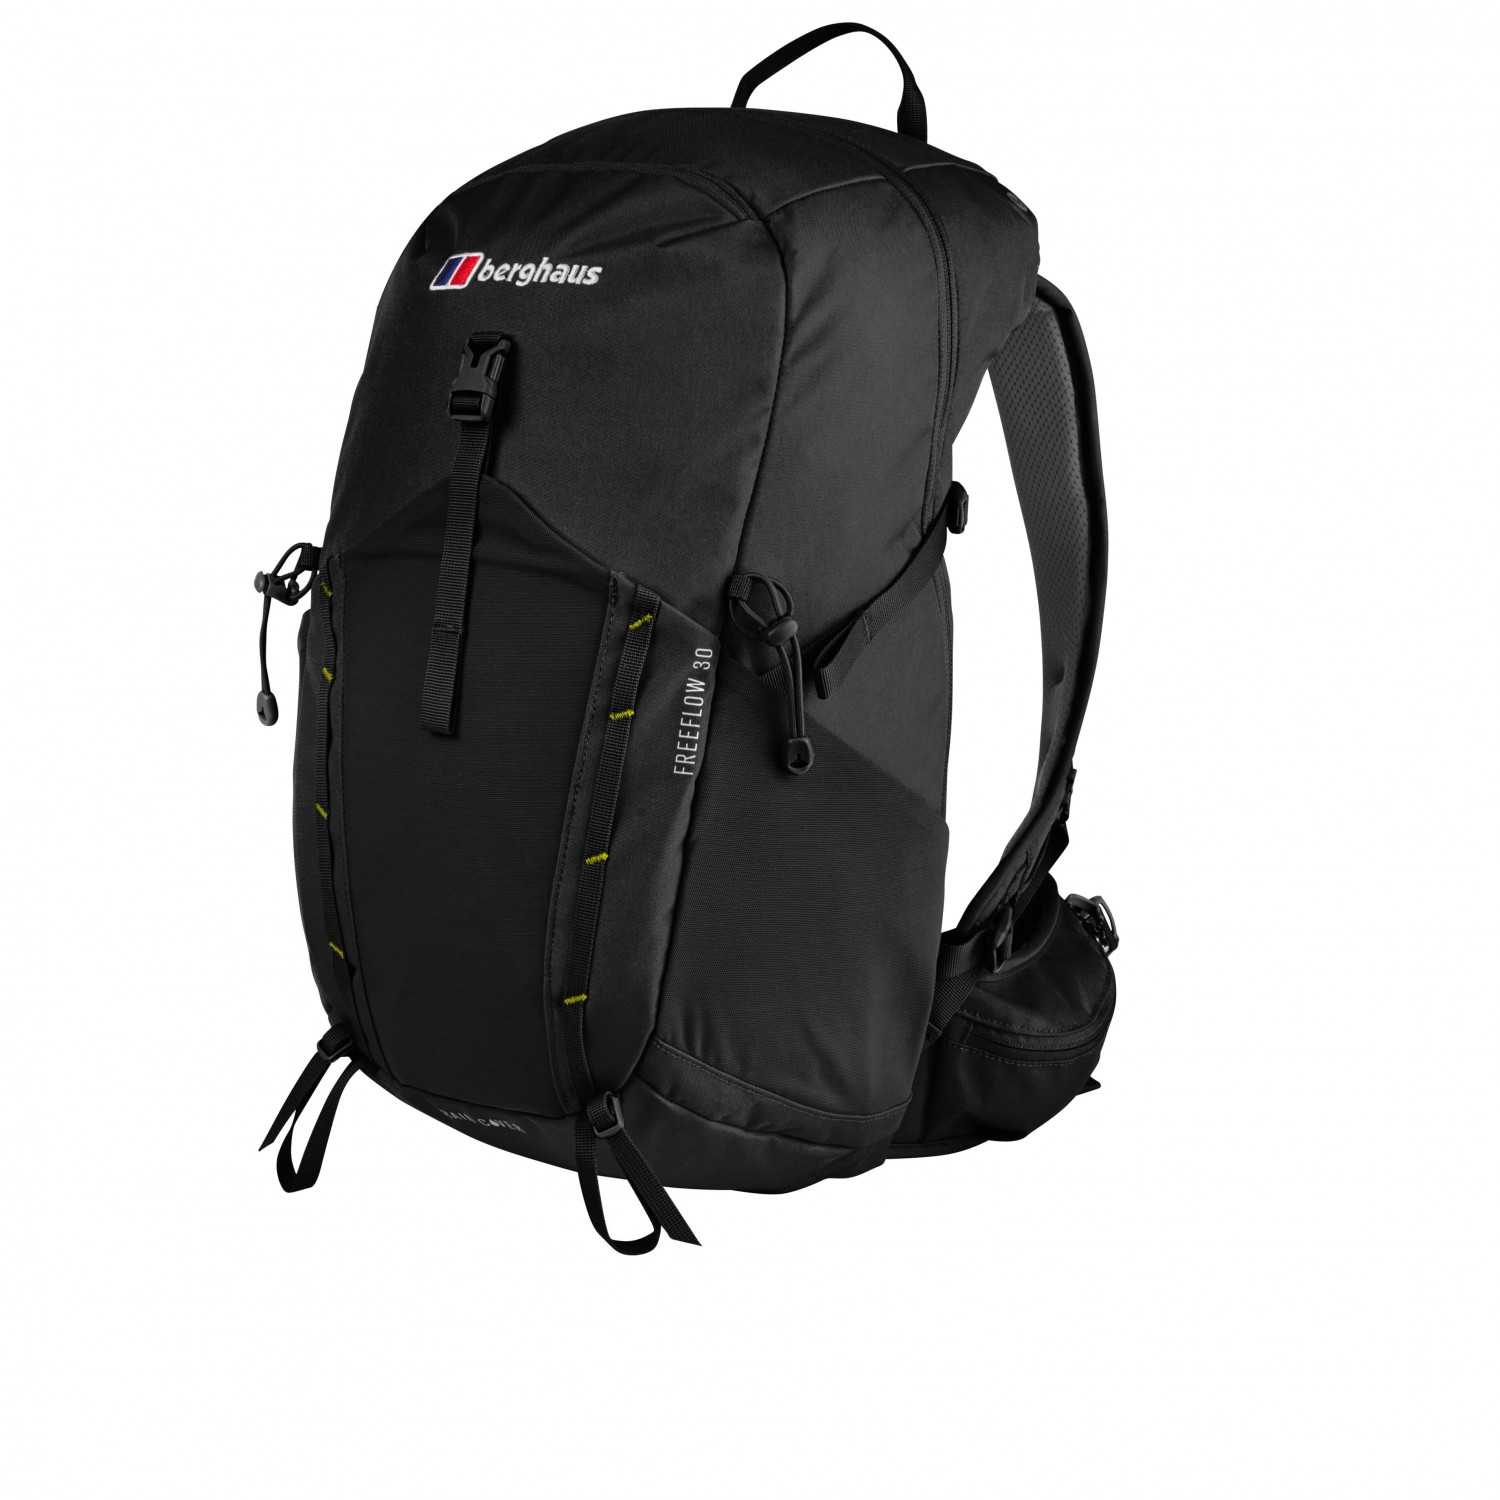 5bb980f566b2 Berghaus Freeflow 30 - Trekking Backpack